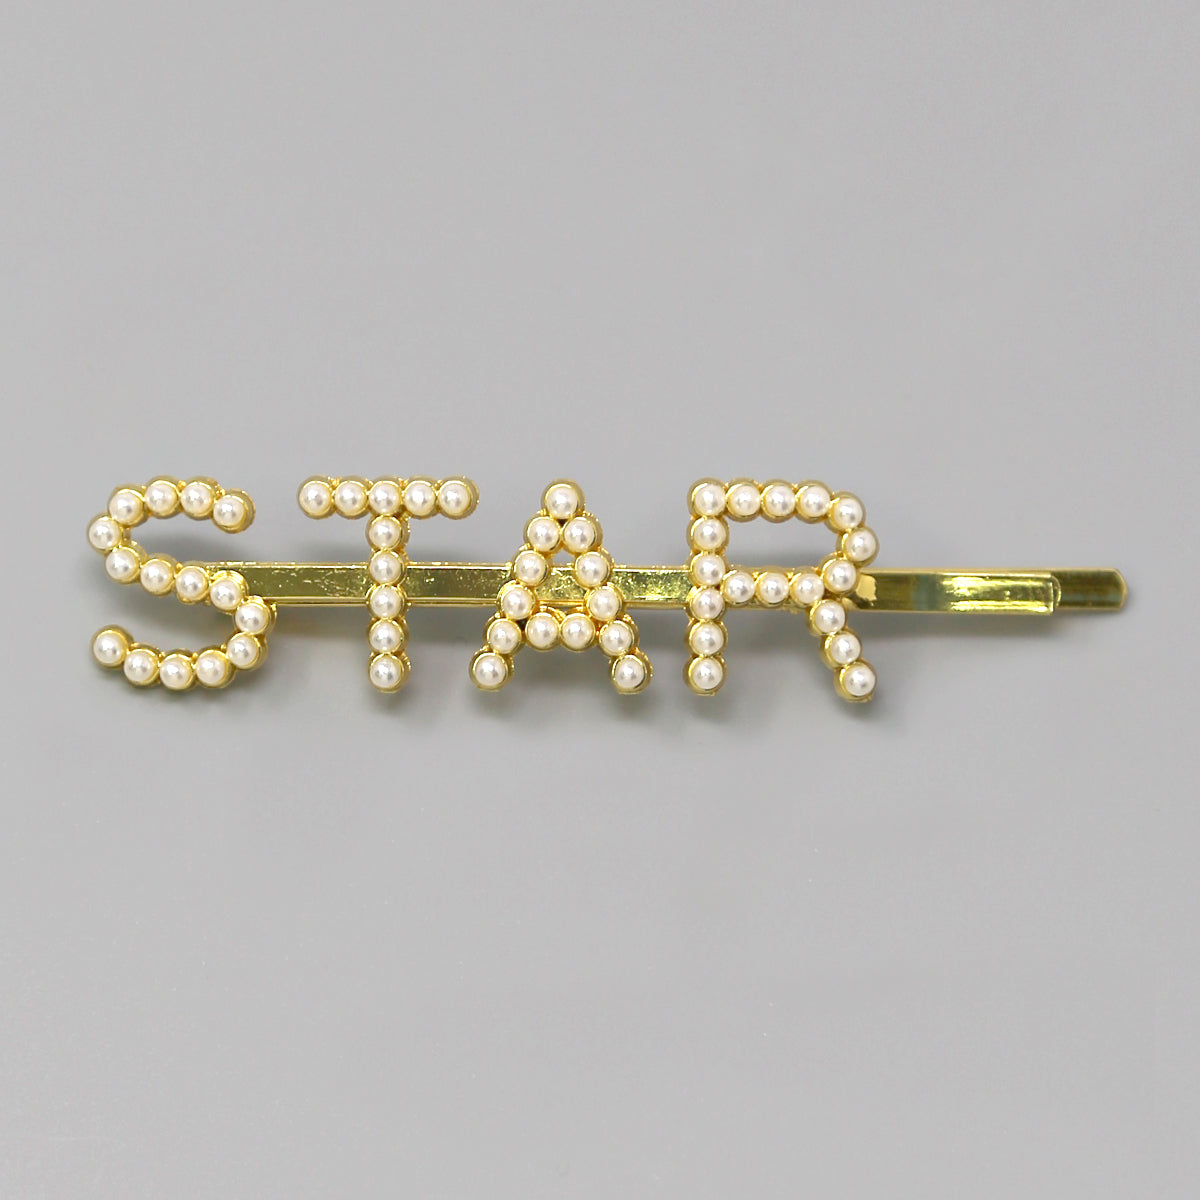 STAR Pearl Bead/ Glass Stone Pave Bobby Pin